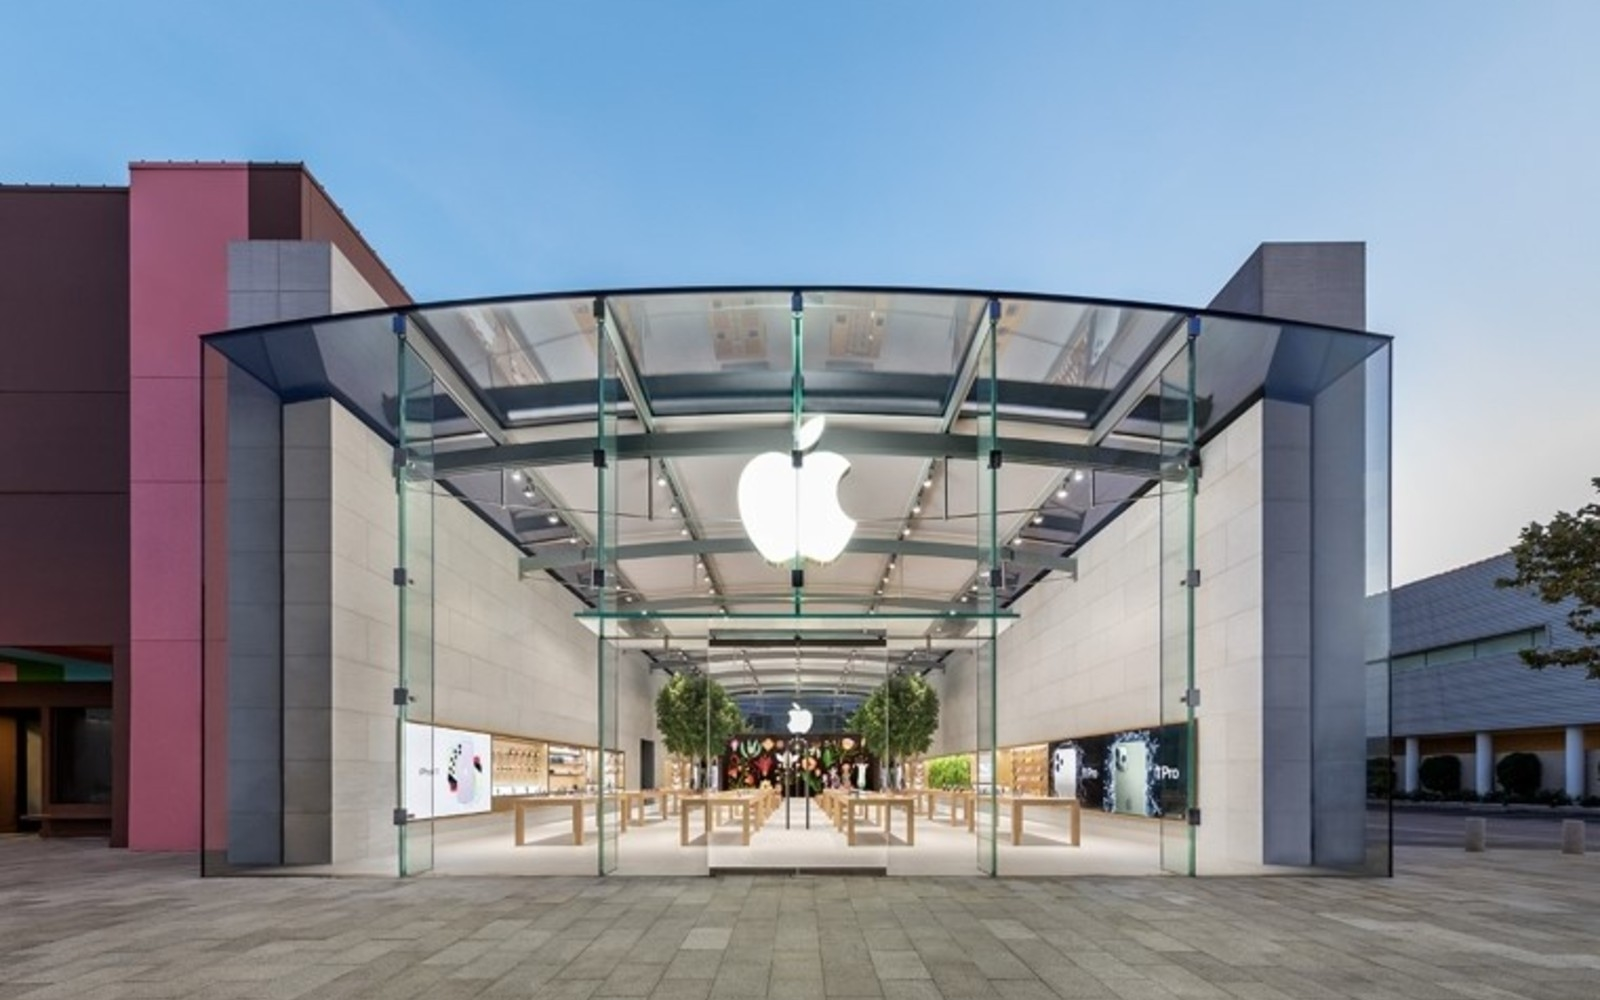 Apple is temporarily closing more stores due to COVID-19 | DeviceDaily.com